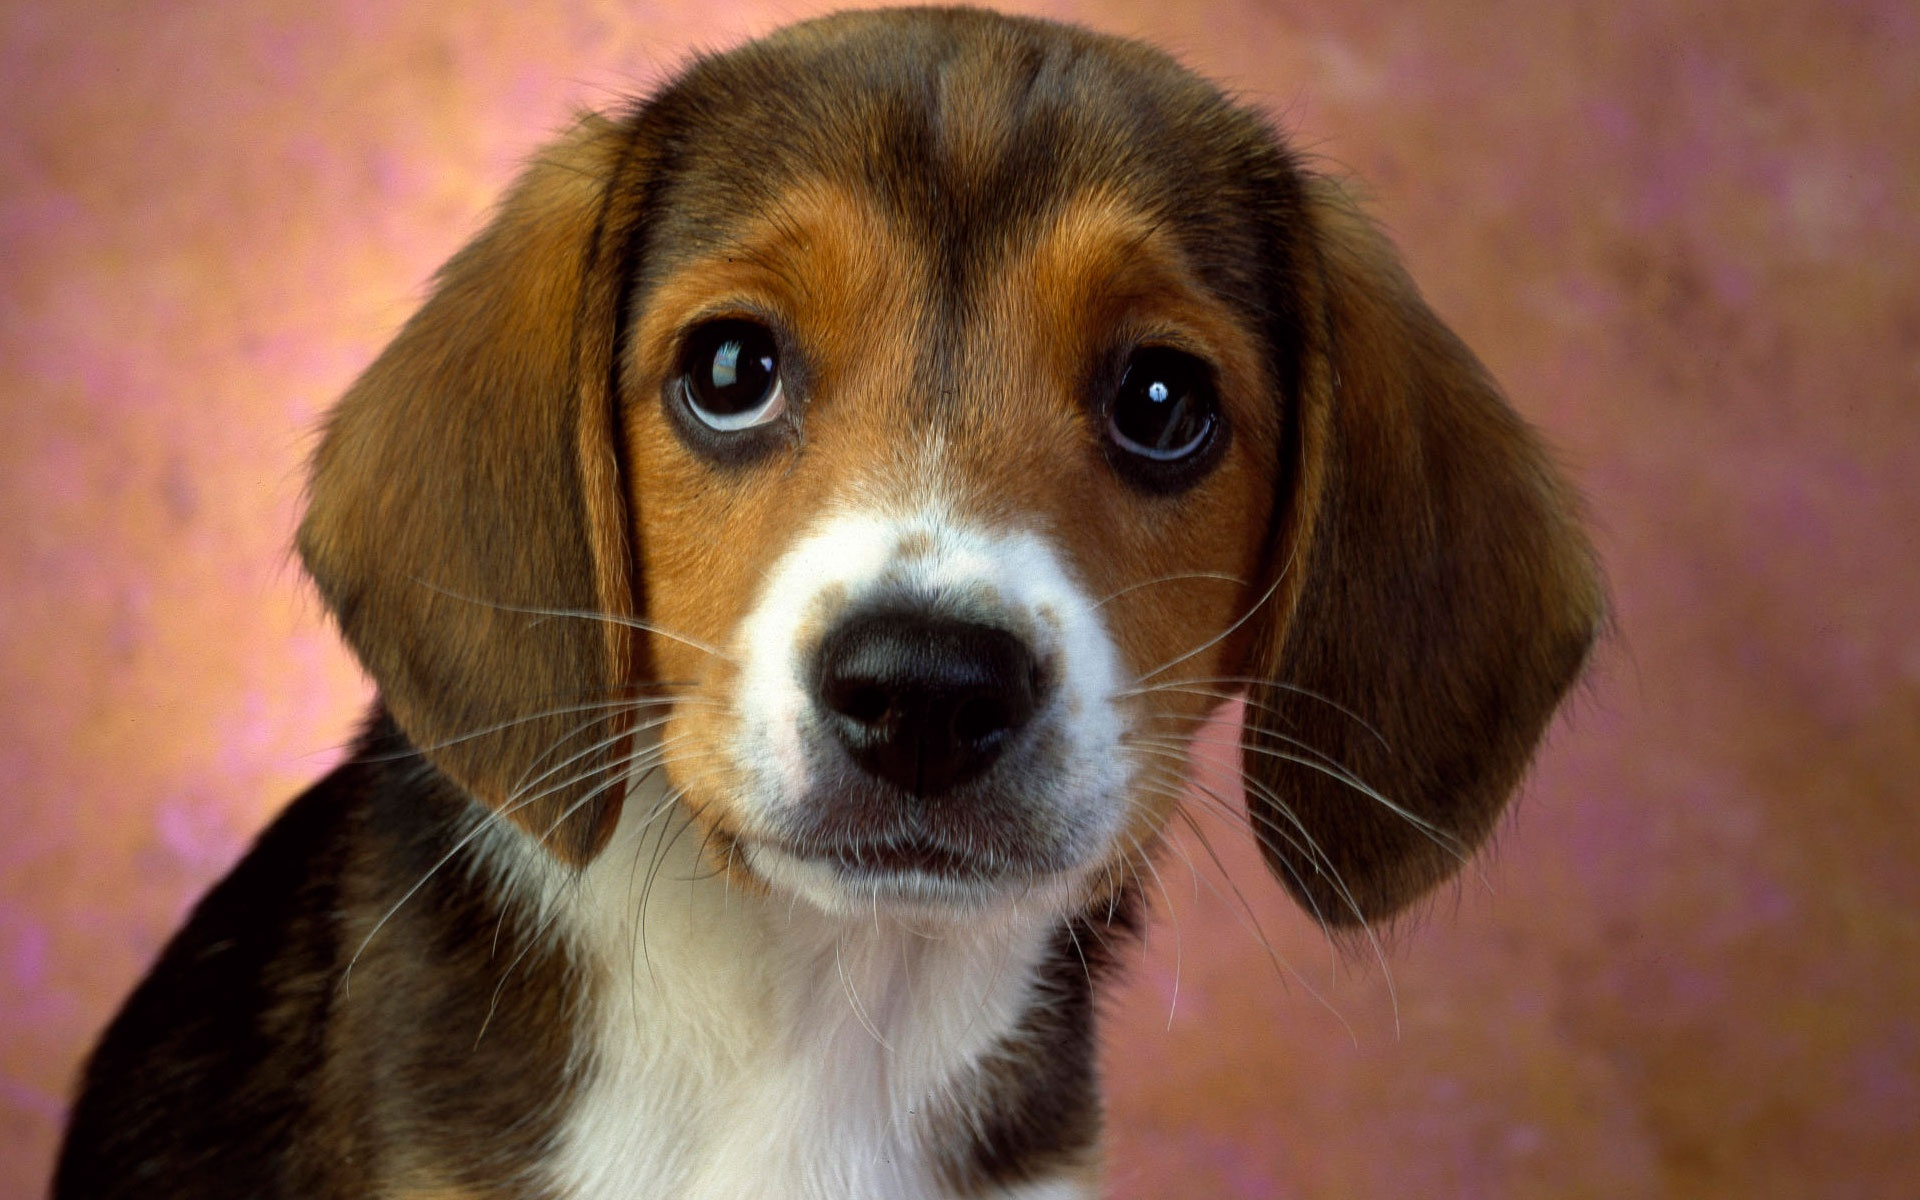 Puppy Eyes Beagle Wallpapers in jpg format for free